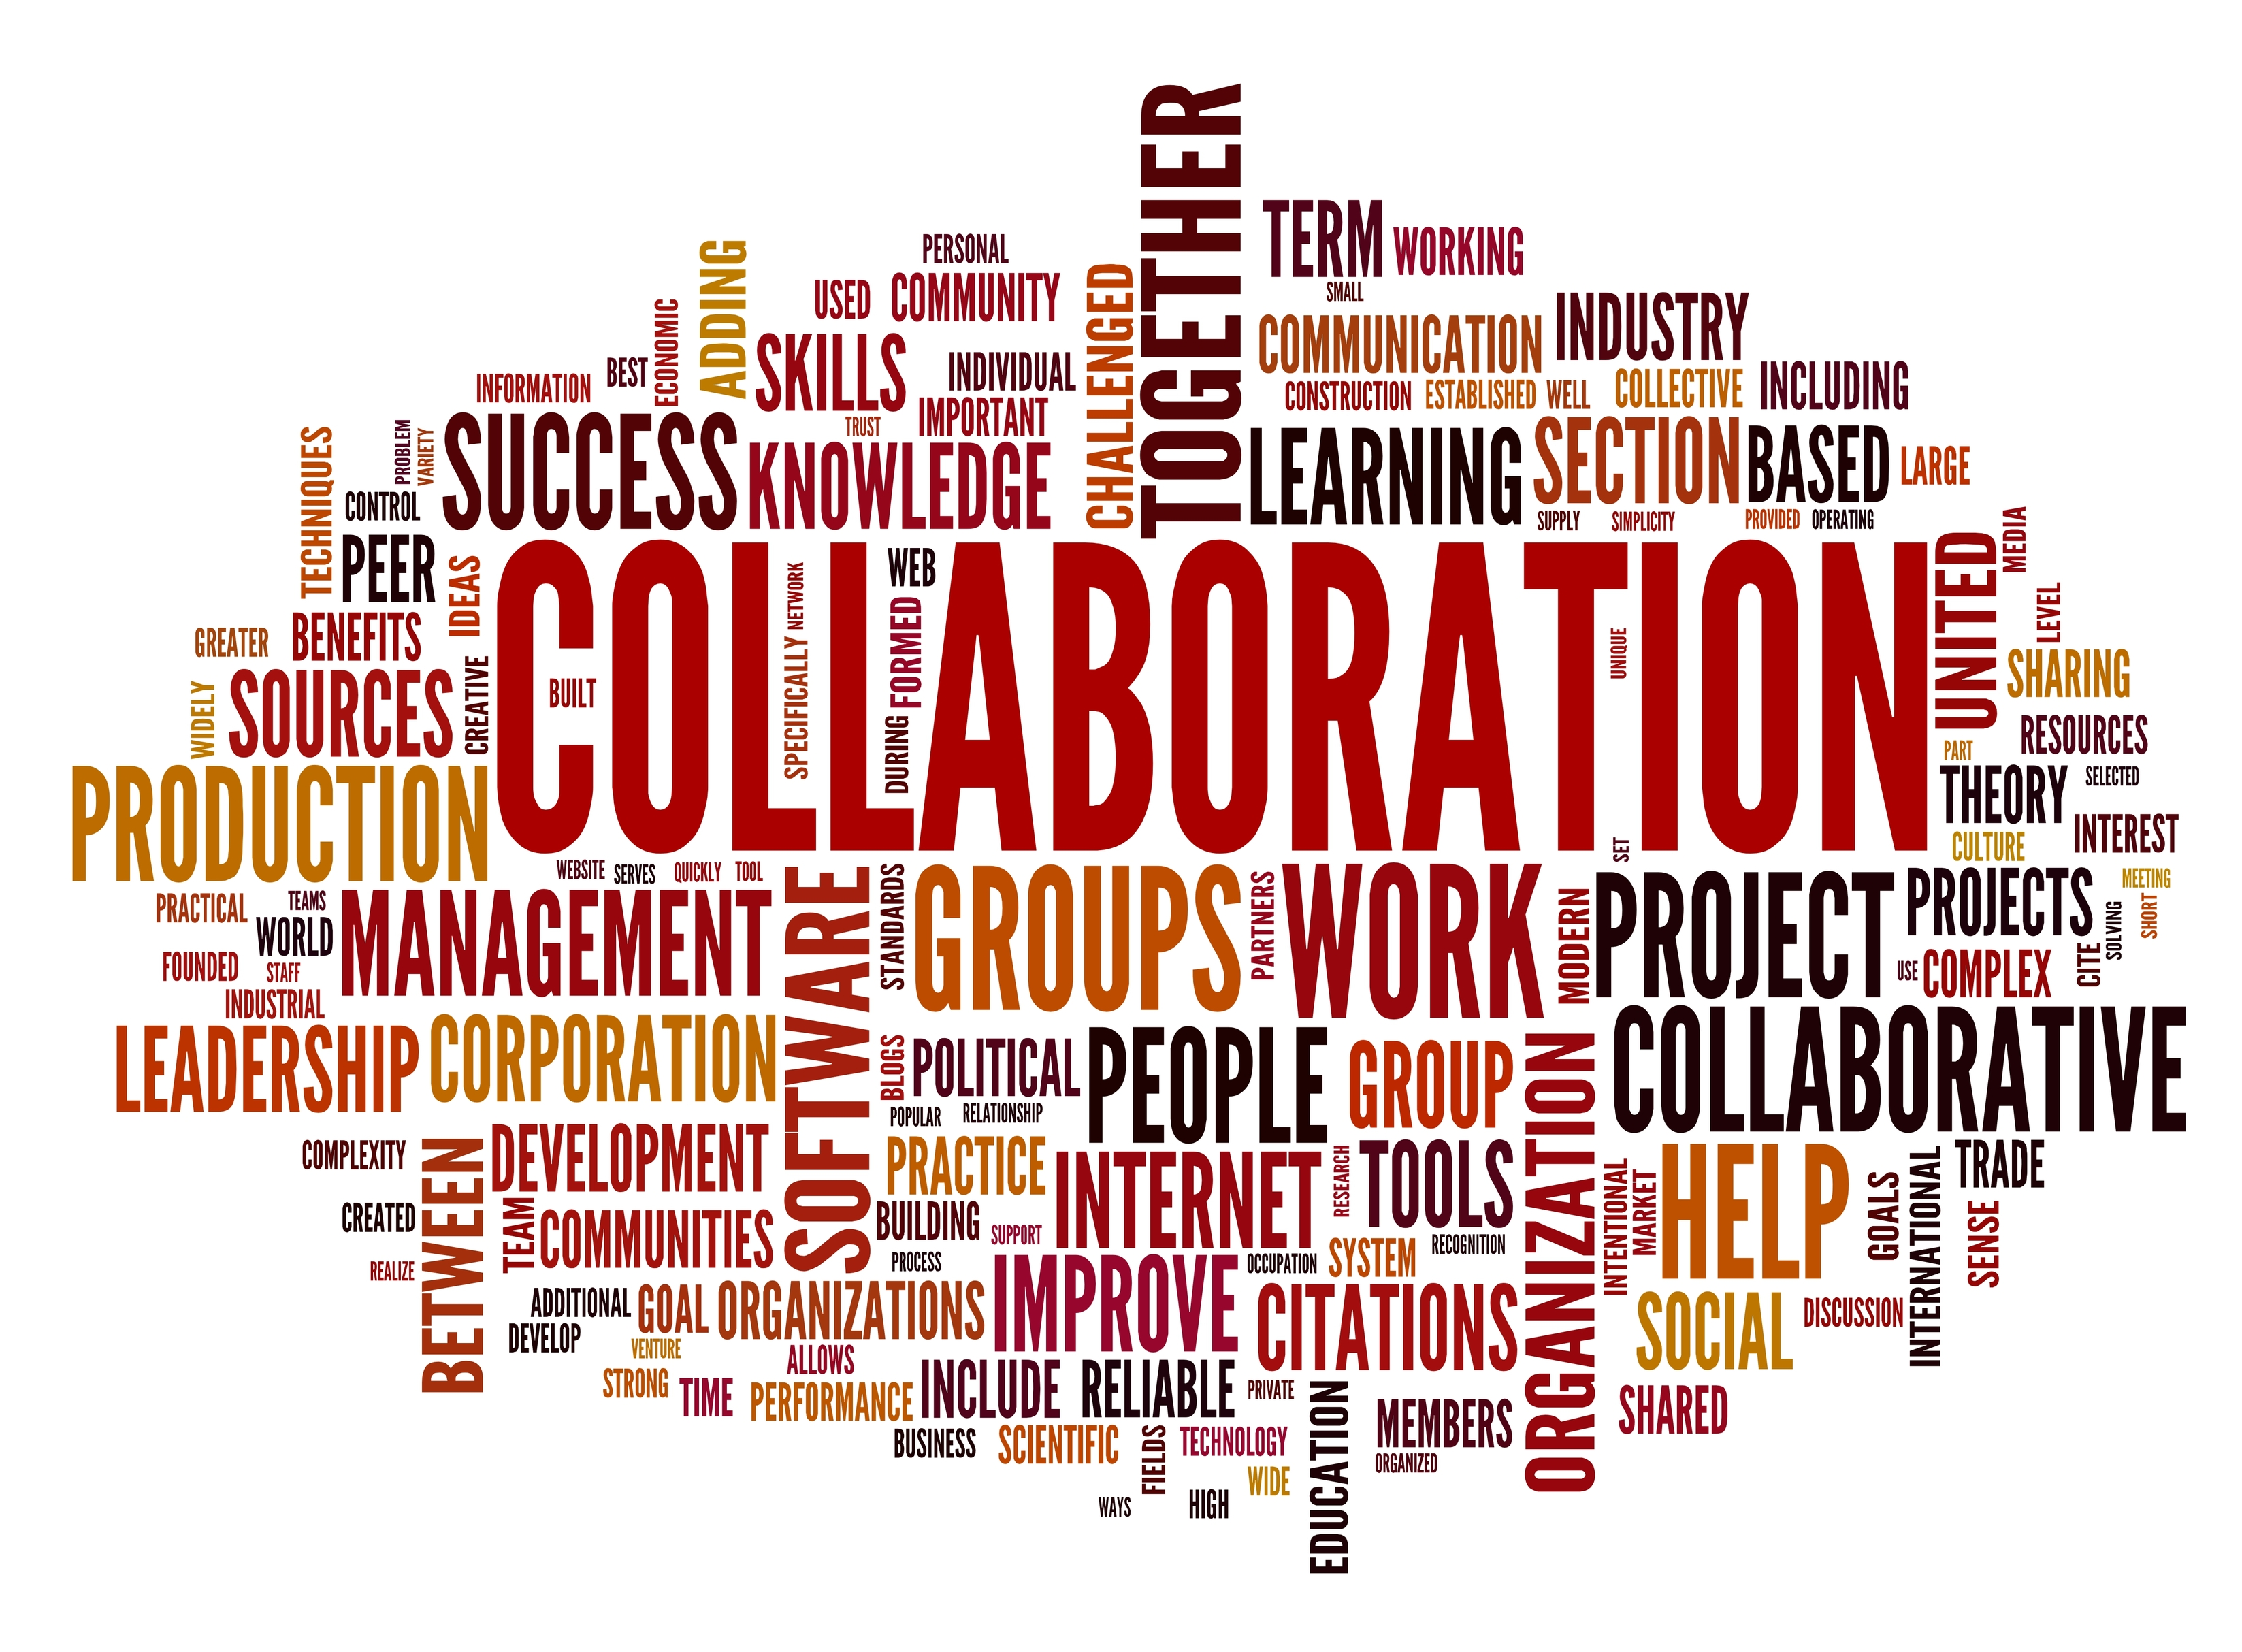 14 Thought Provoking And Inspiring Collaboration Quotes